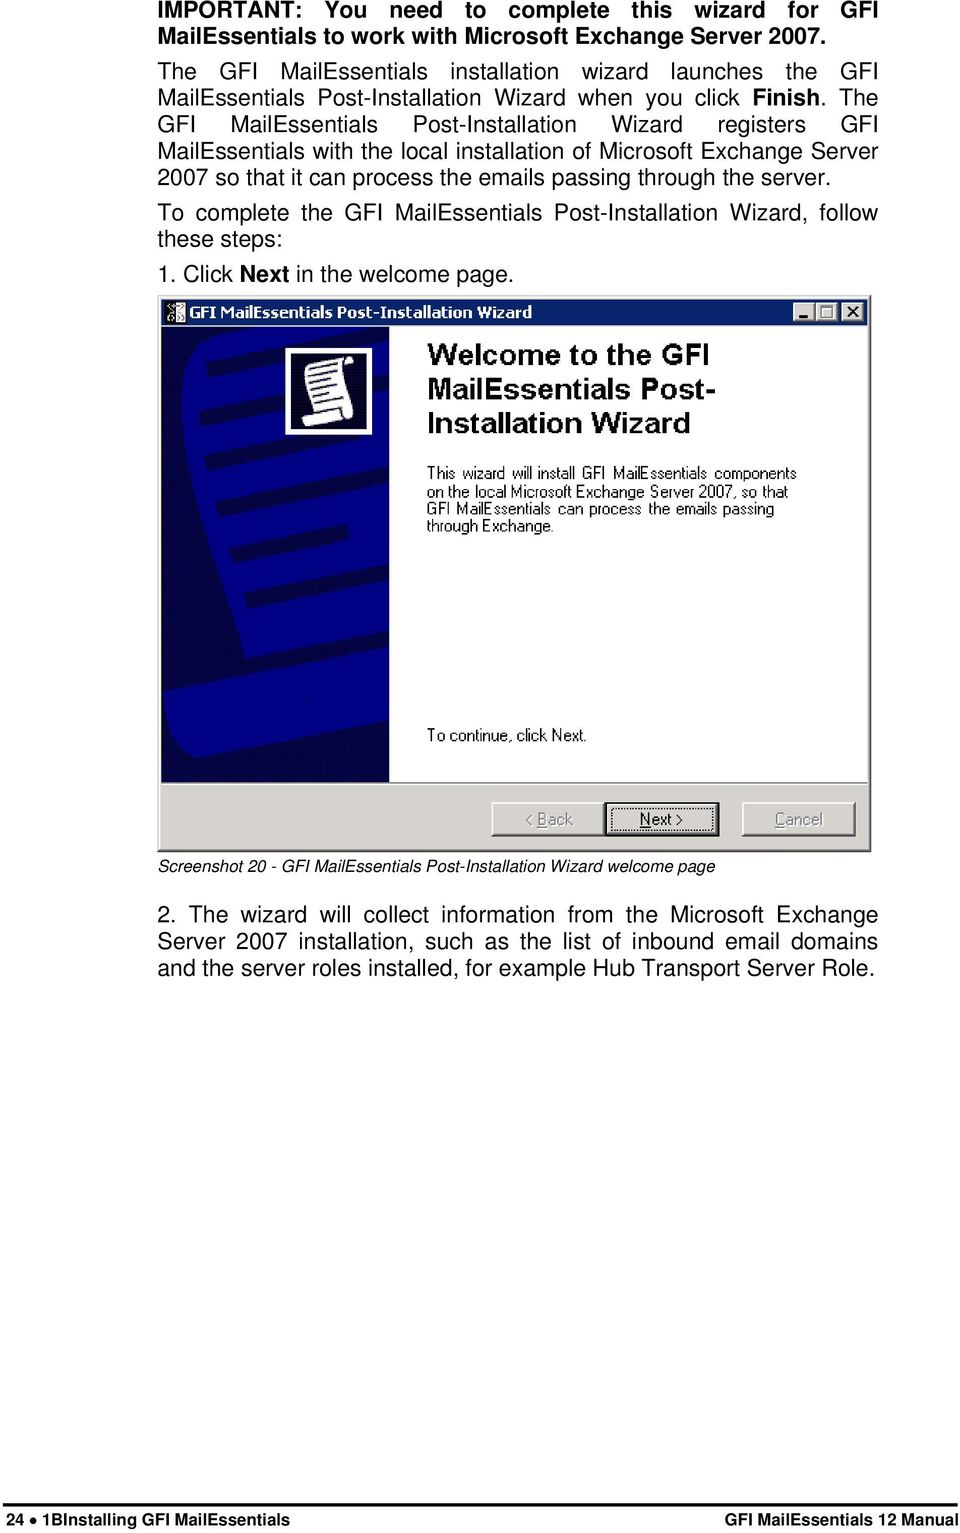 The GFI MailEssentials Post-Installation Wizard registers GFI MailEssentials with the local installation of Microsoft Exchange Server 2007 so that it can process the emails passing through the server.